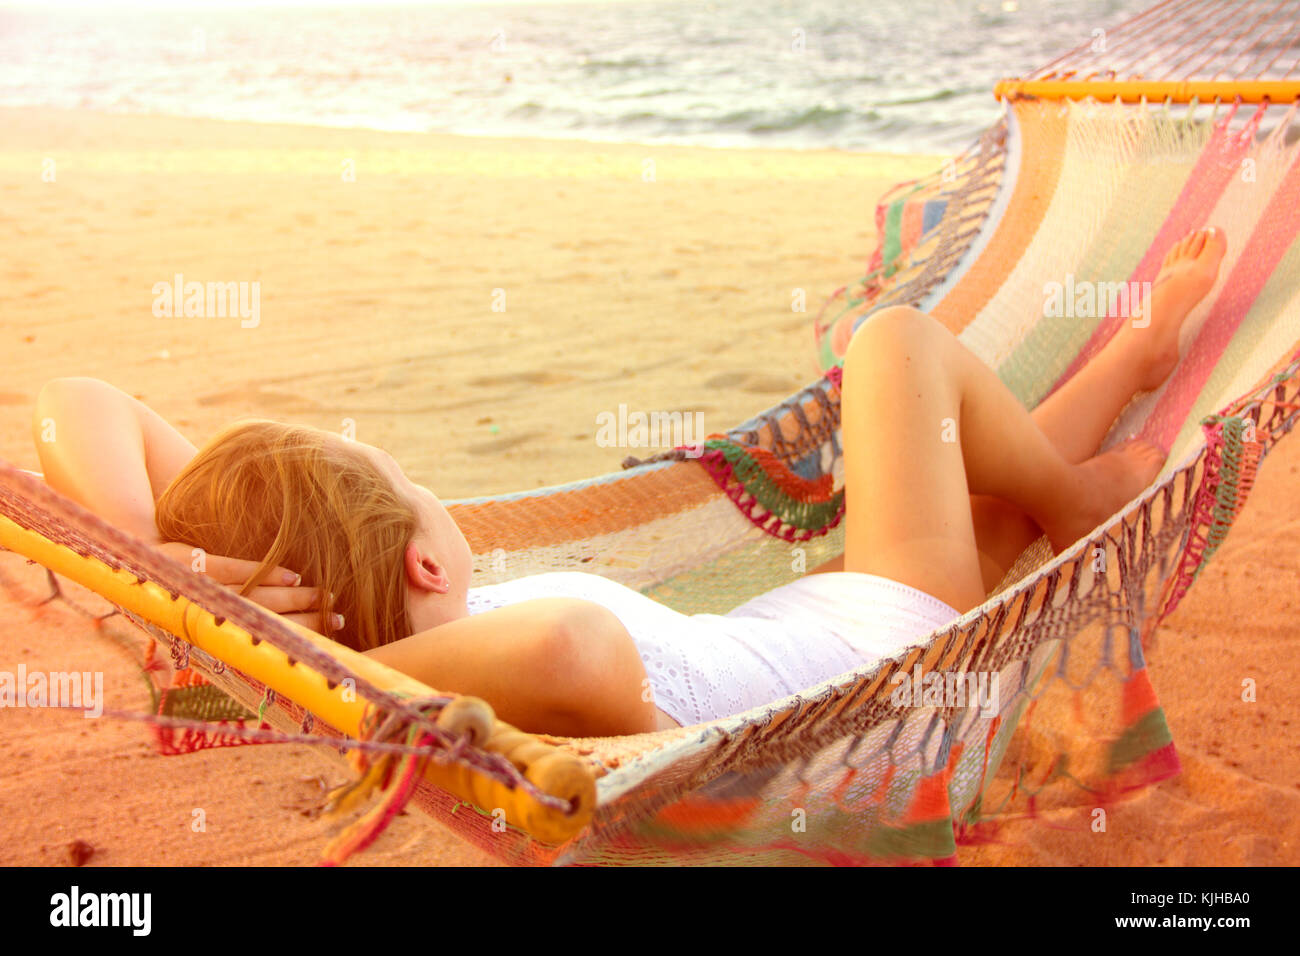 Beautiful woman in a white dress in a hammock on the beach, blissfully soaking in the bright summer sun. - Stock Image